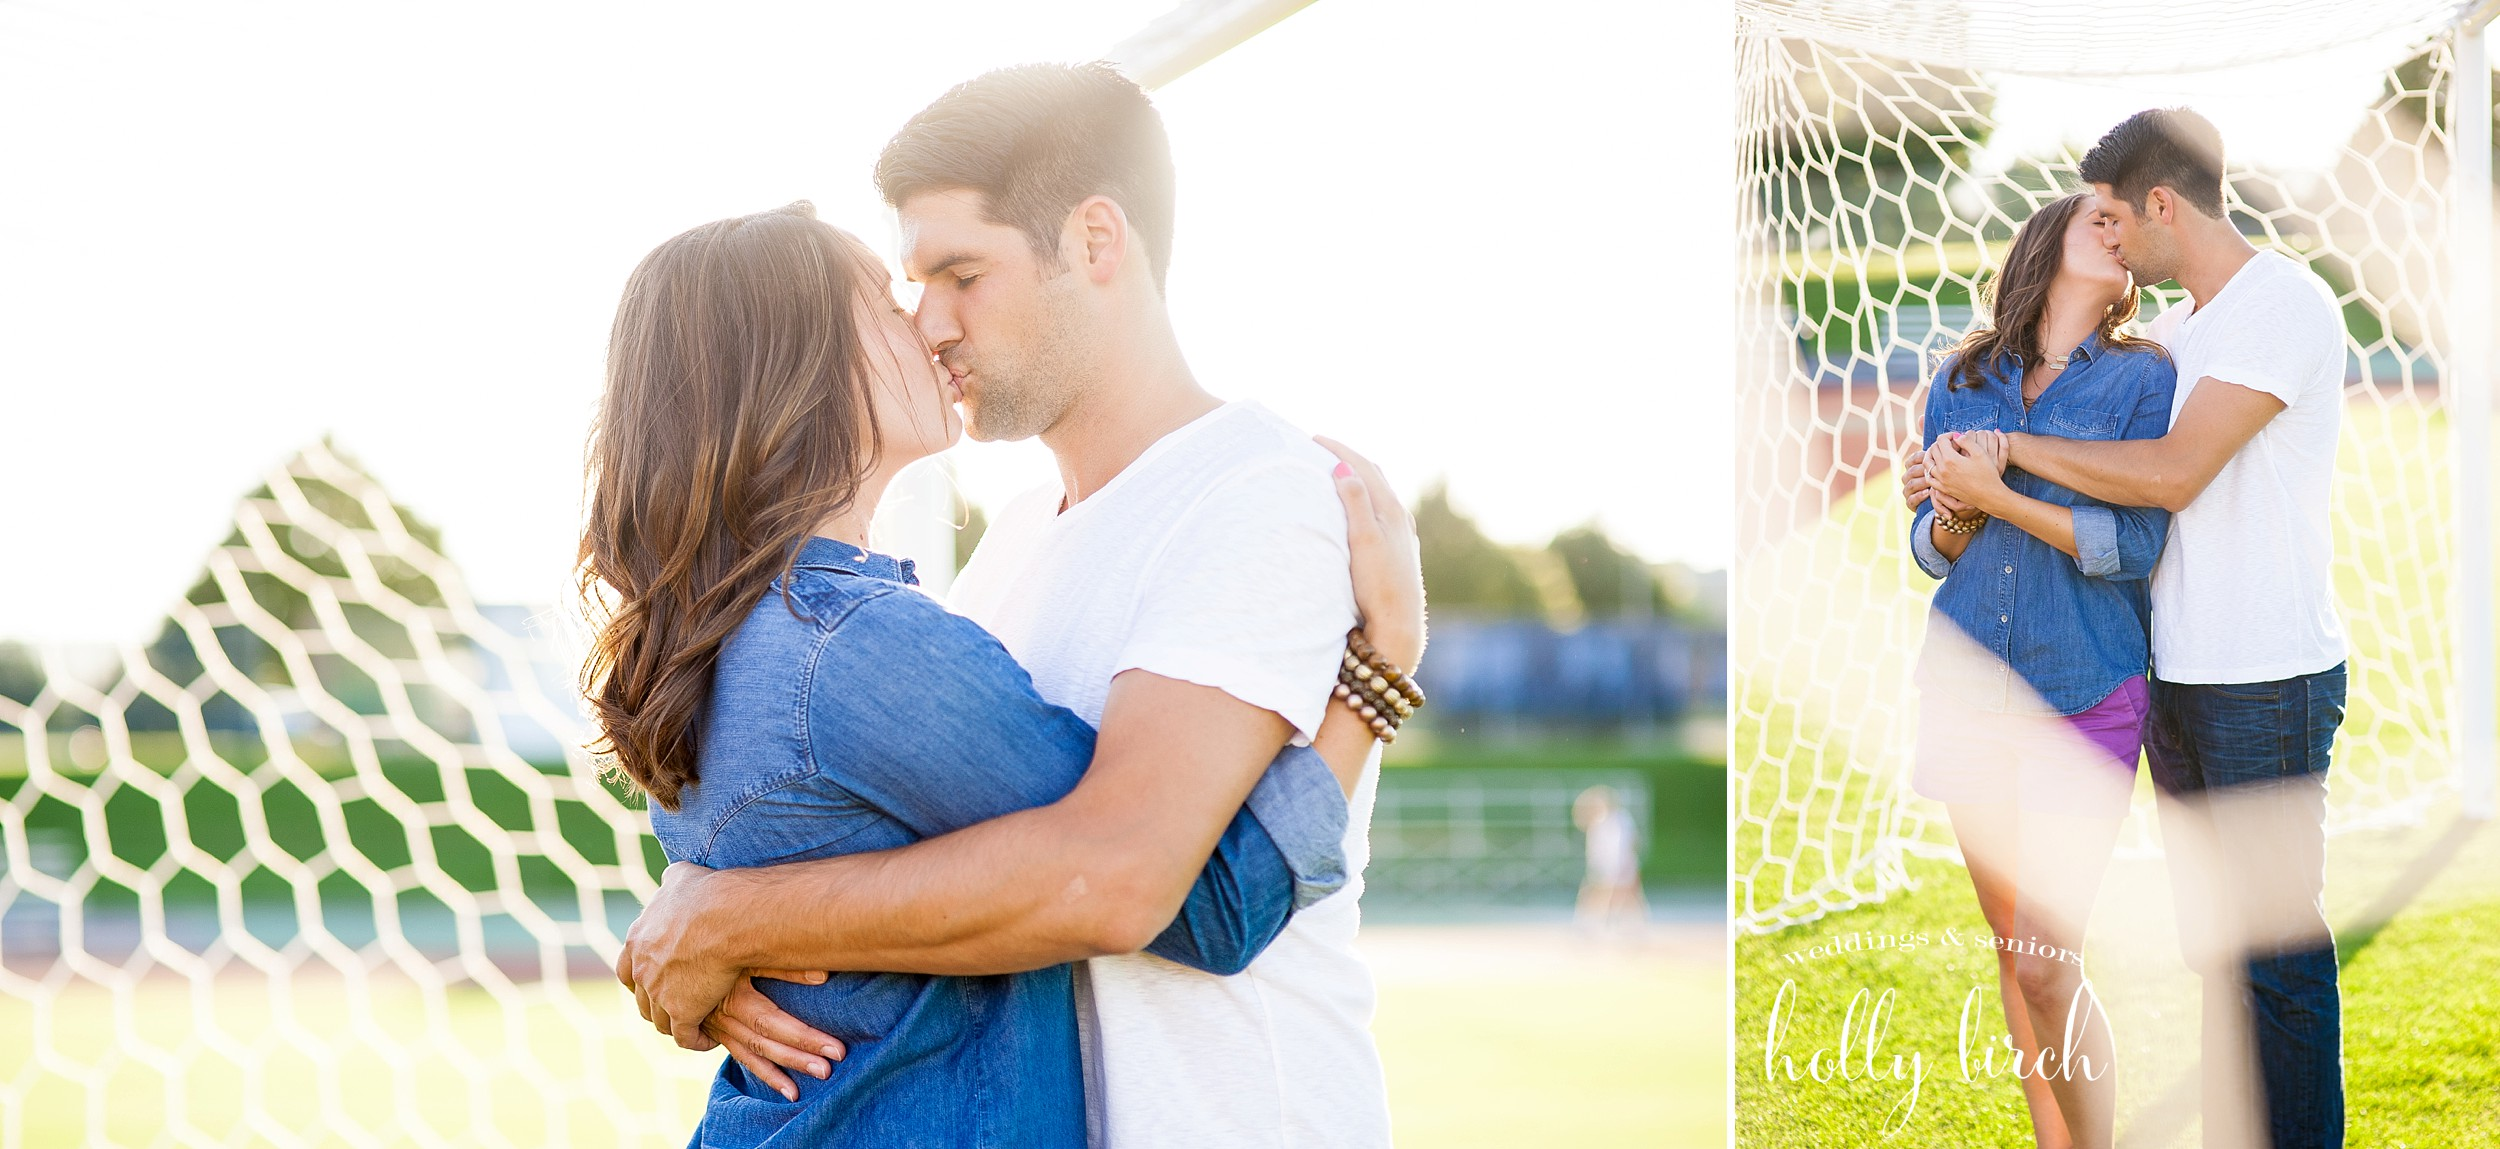 soccer engagement pictures